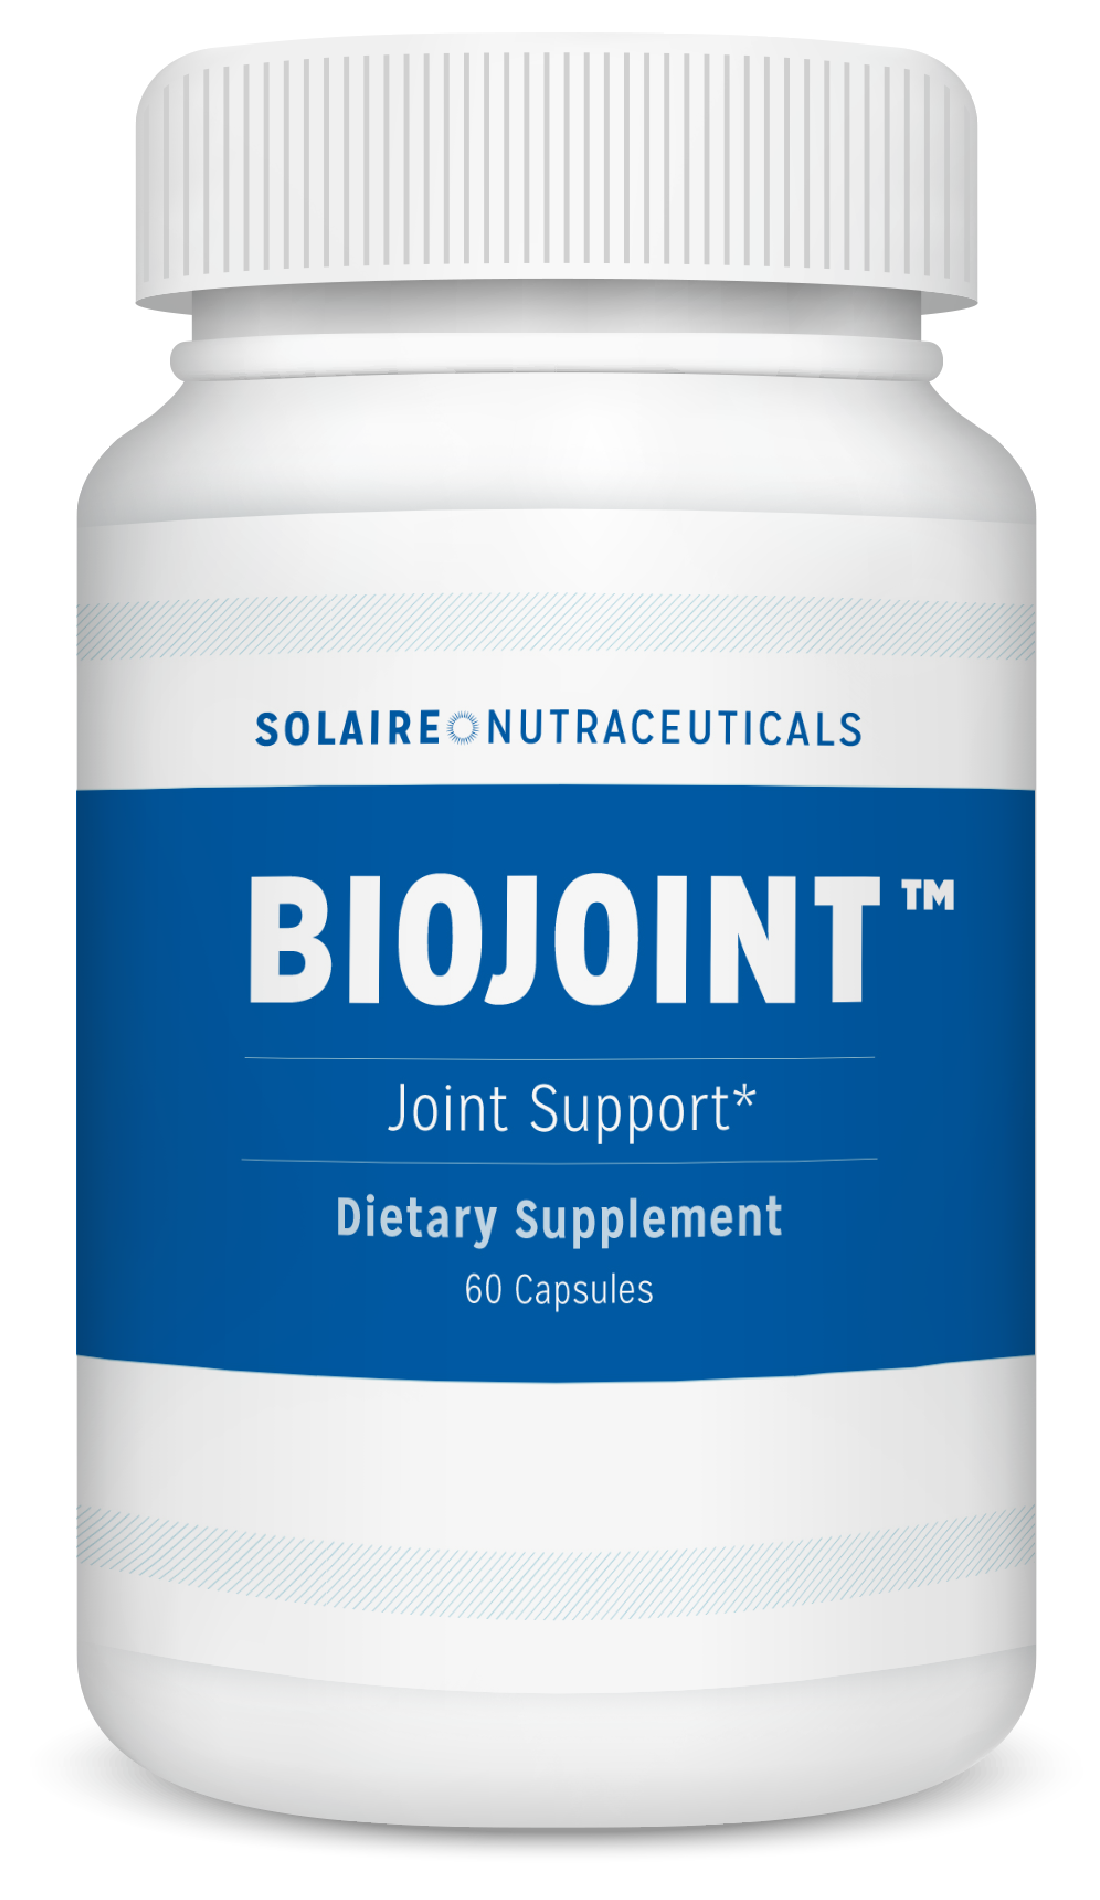 Bottle of Biojoint